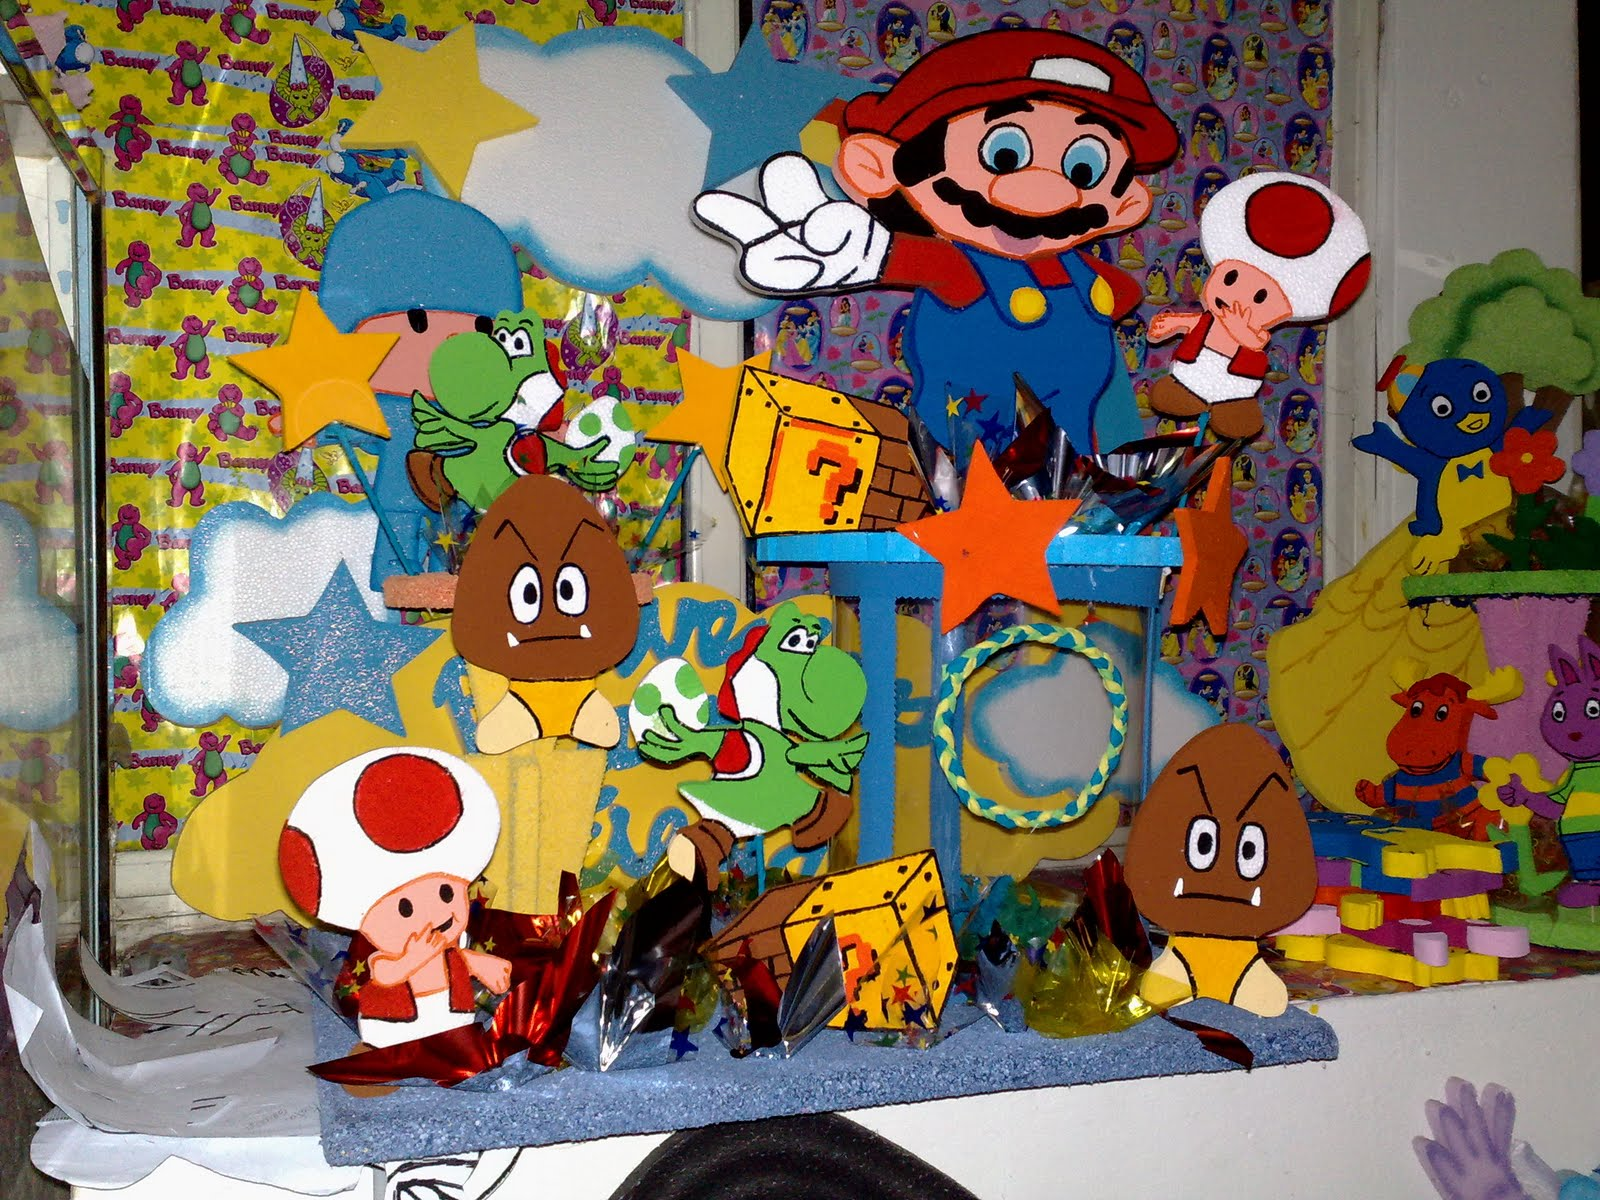 Bross'net Decoracion De Mario Bros Car Interior Design